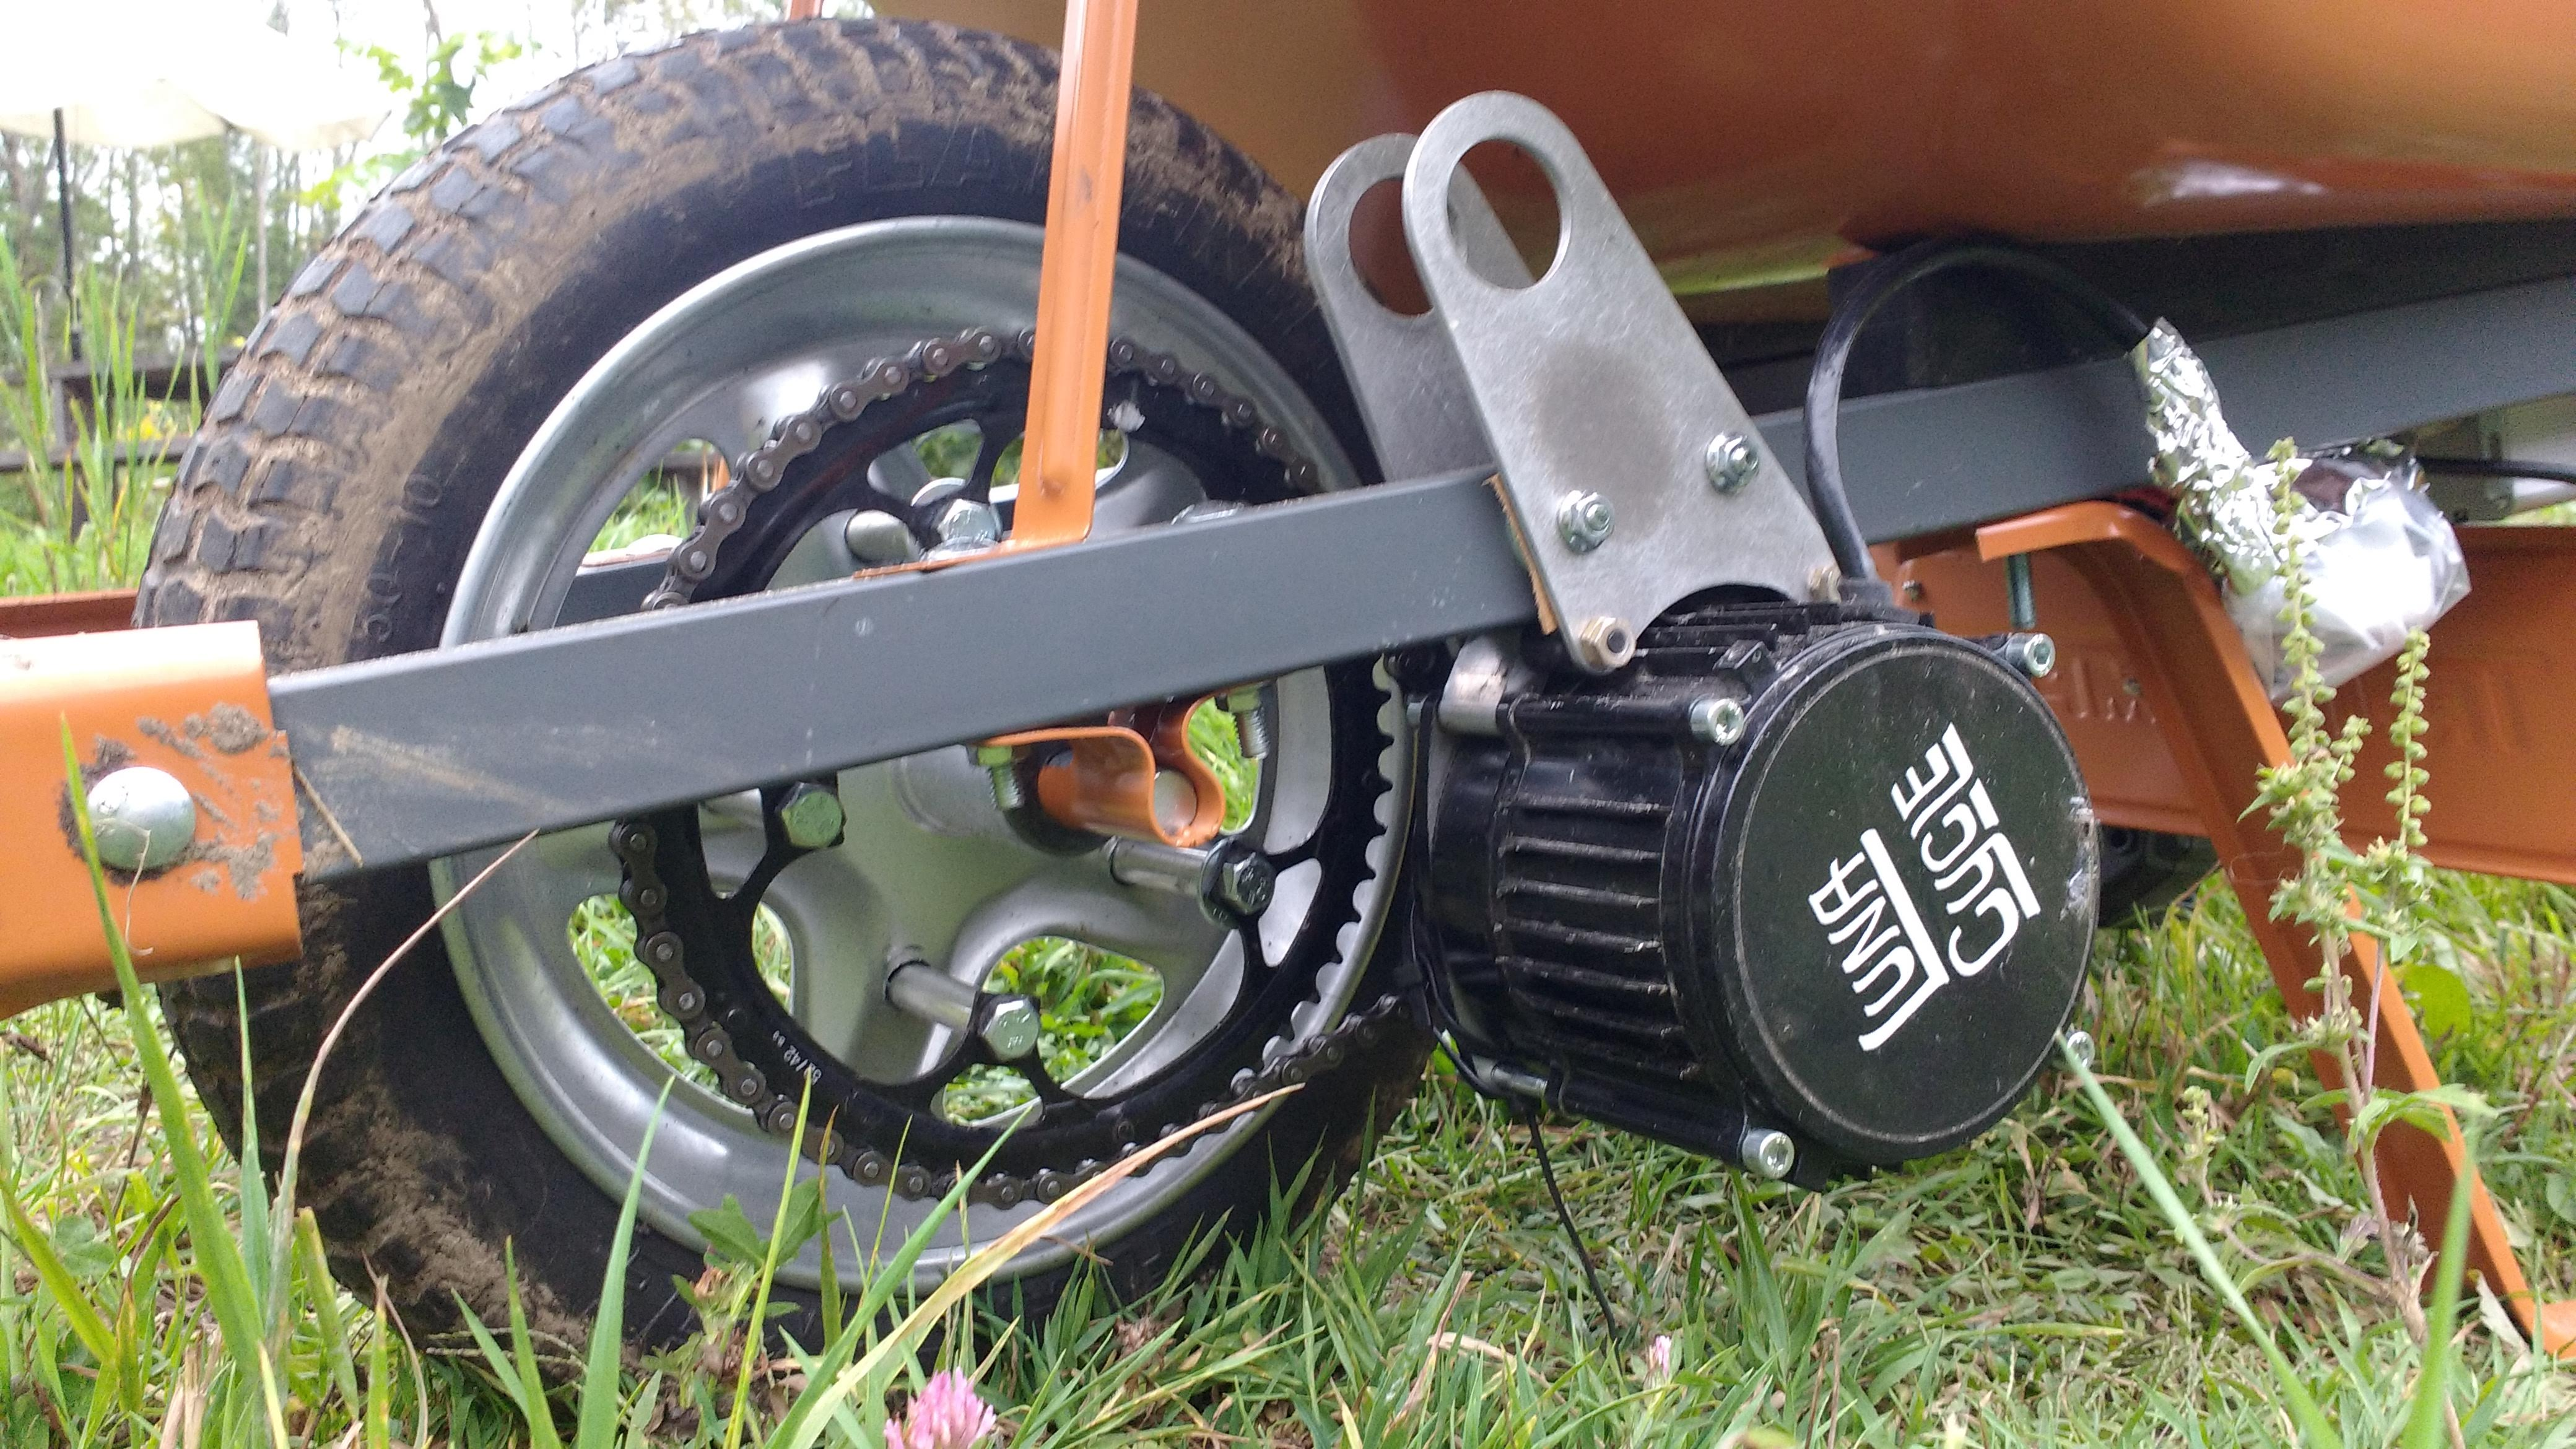 45a19aceded Because The Wifey Demands It : Build A 3000W Electric Wheelbarrow Out Of A  Cyclone Mid Drive Kit For ~$450